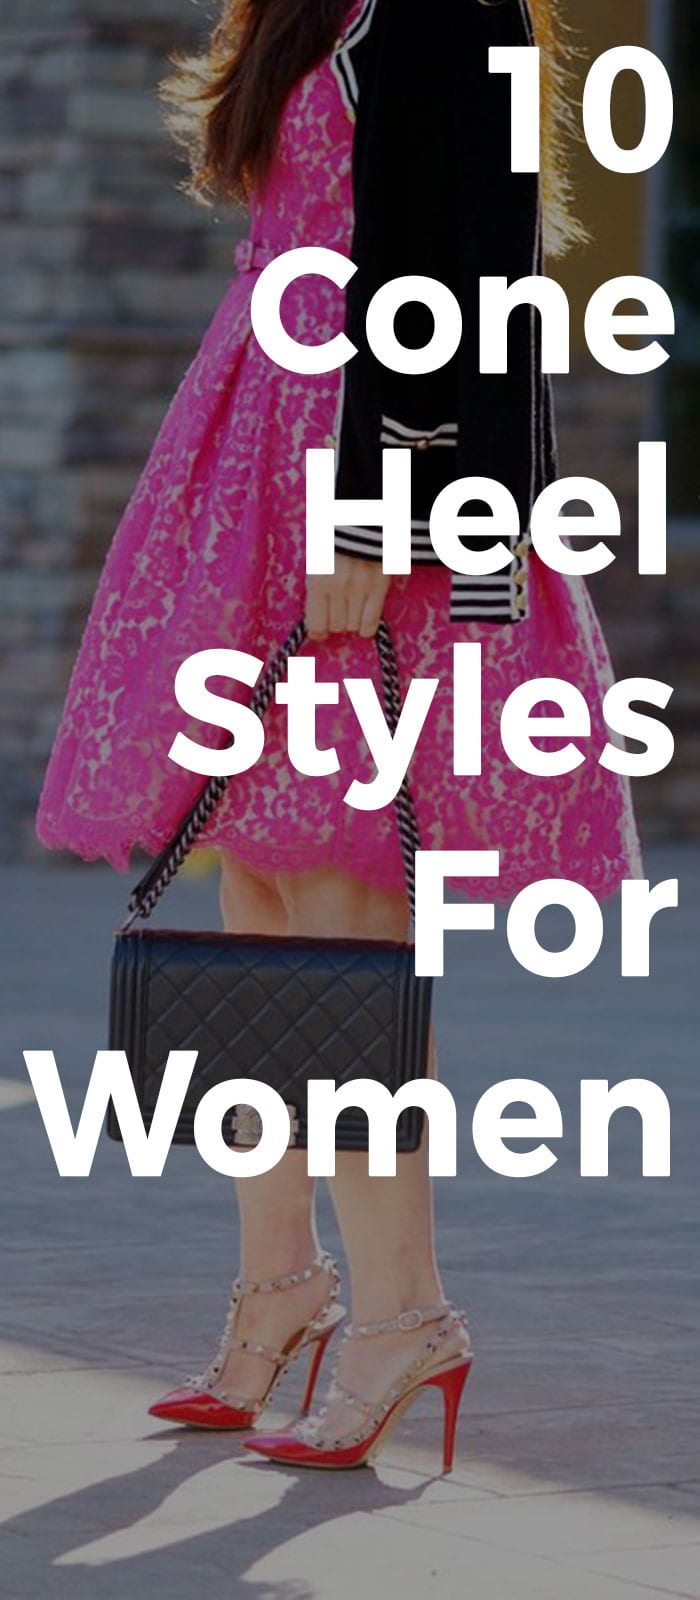 10 Cone Heel Styles That Are Simple And Smart For Your Everyday Outfit!